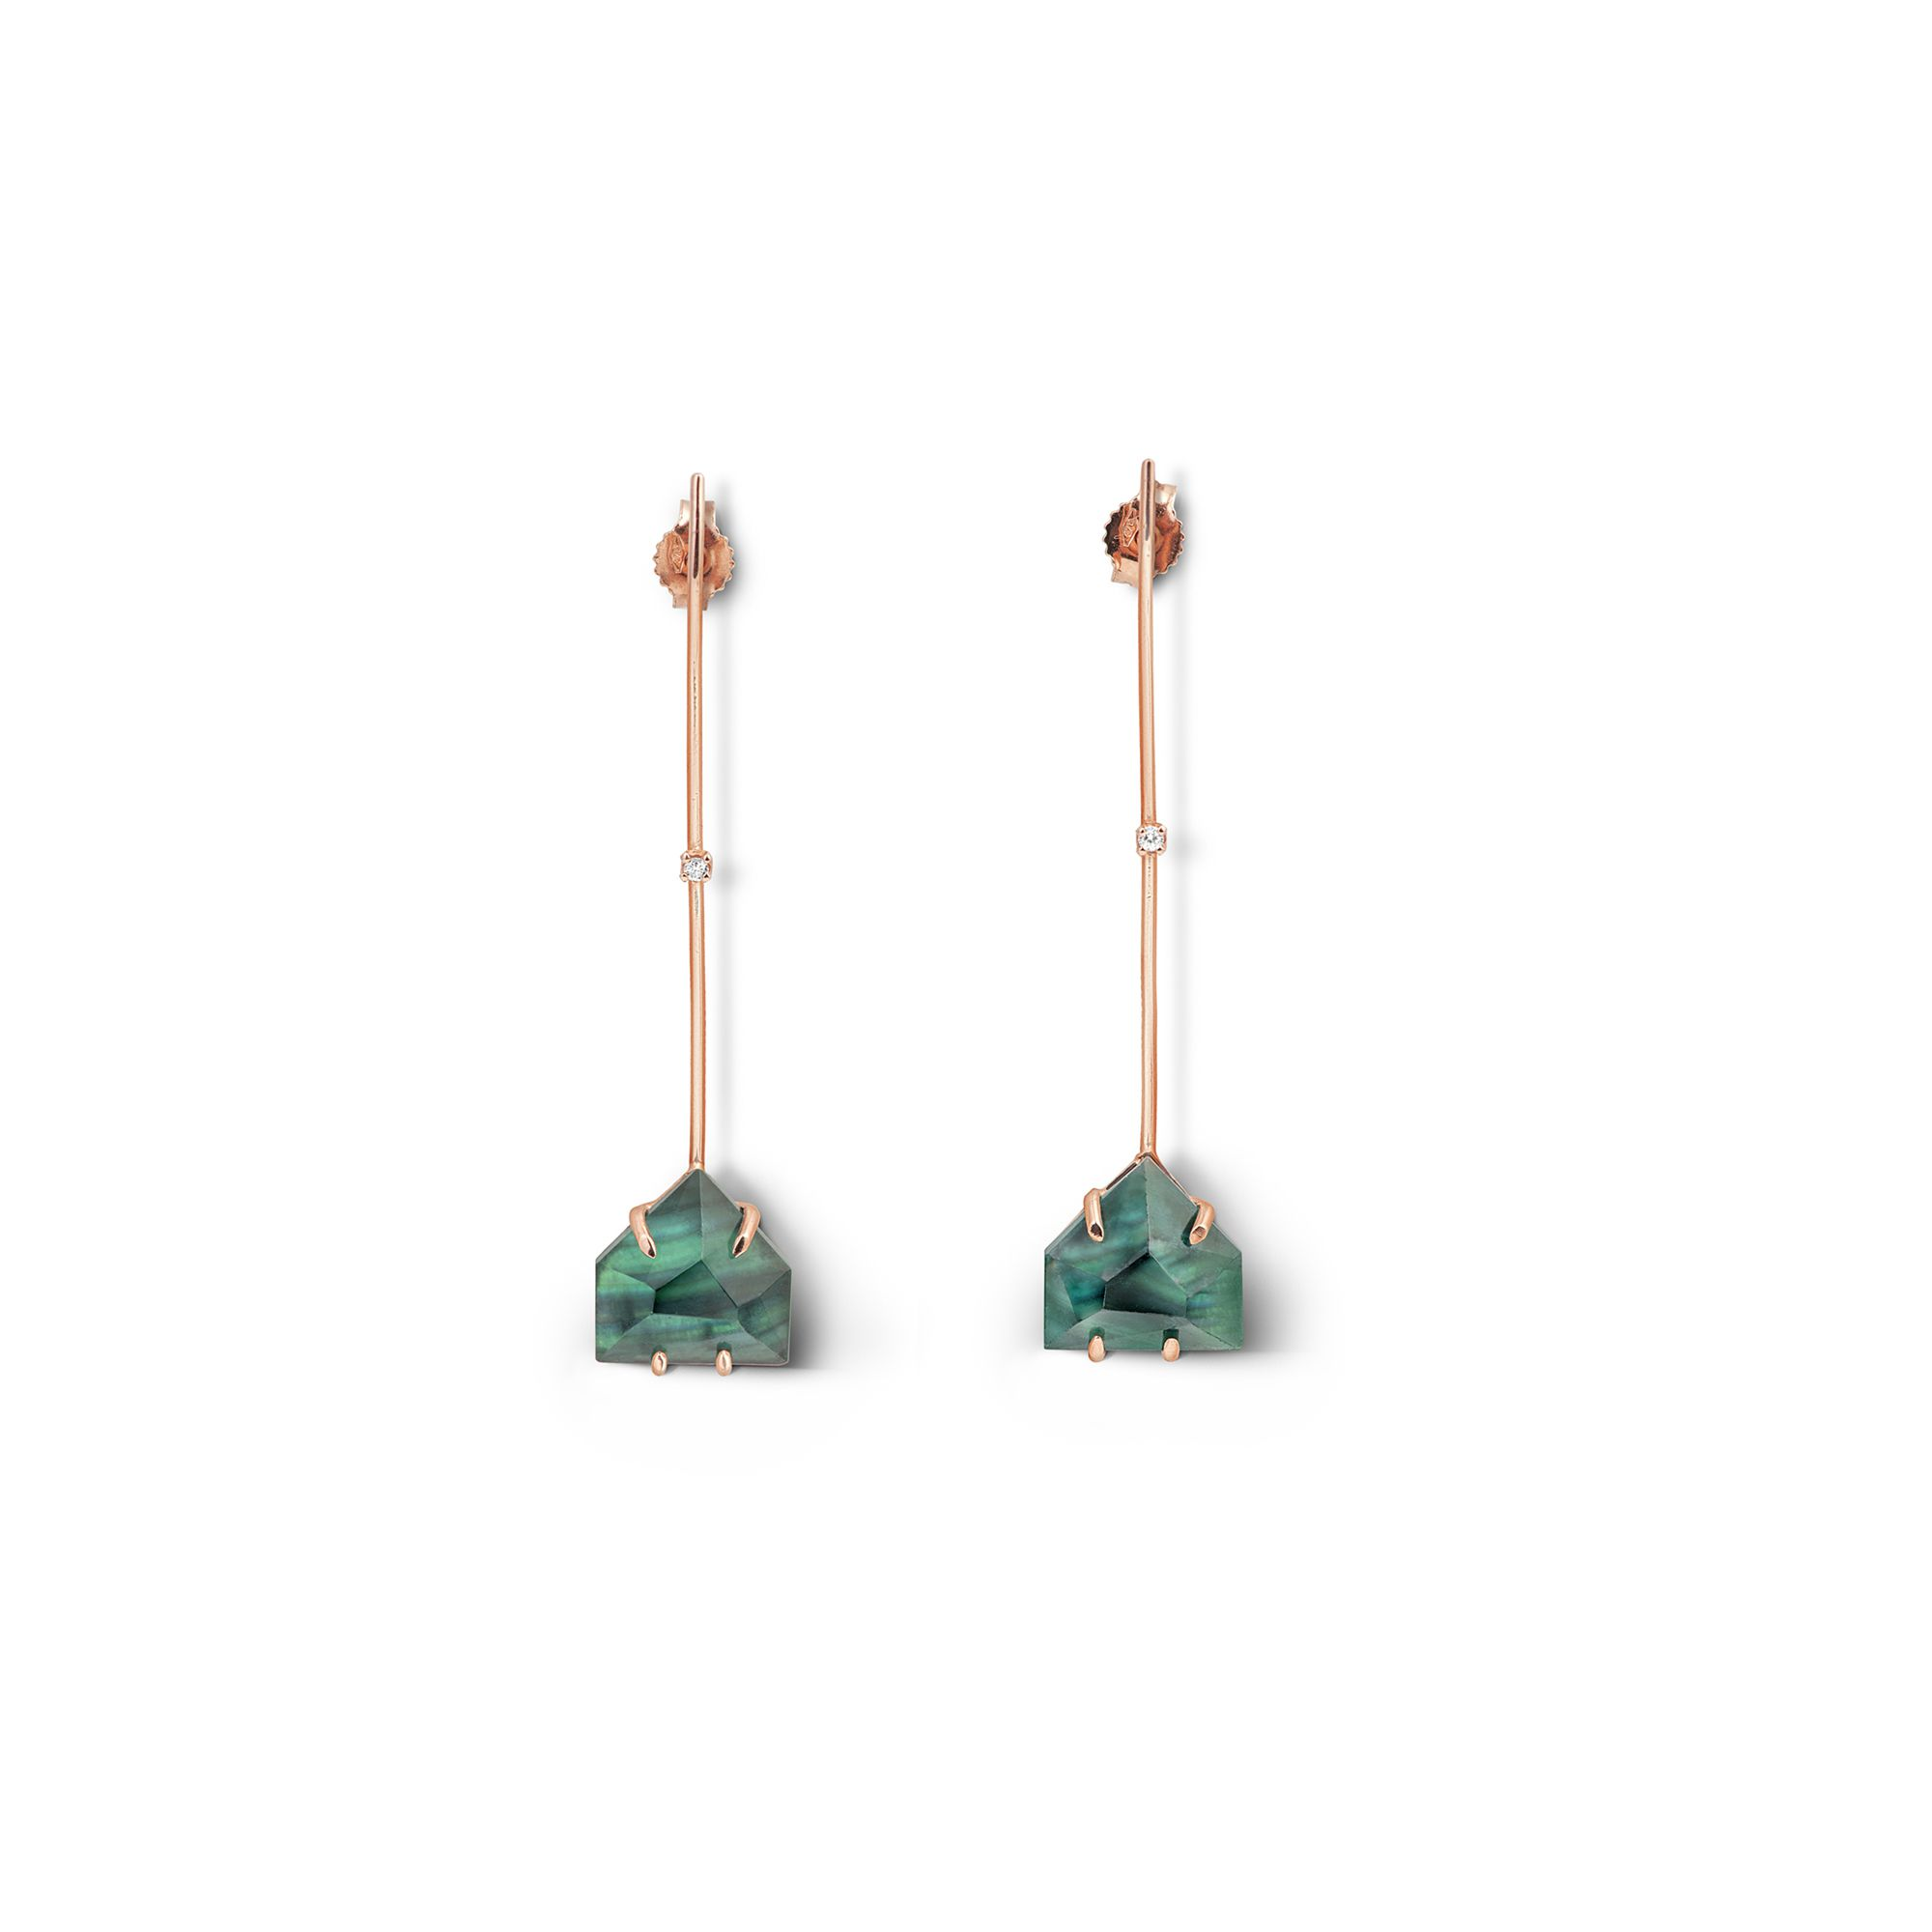 'Amo' with green trapeze Rose gold earrings with crystals and diamonds